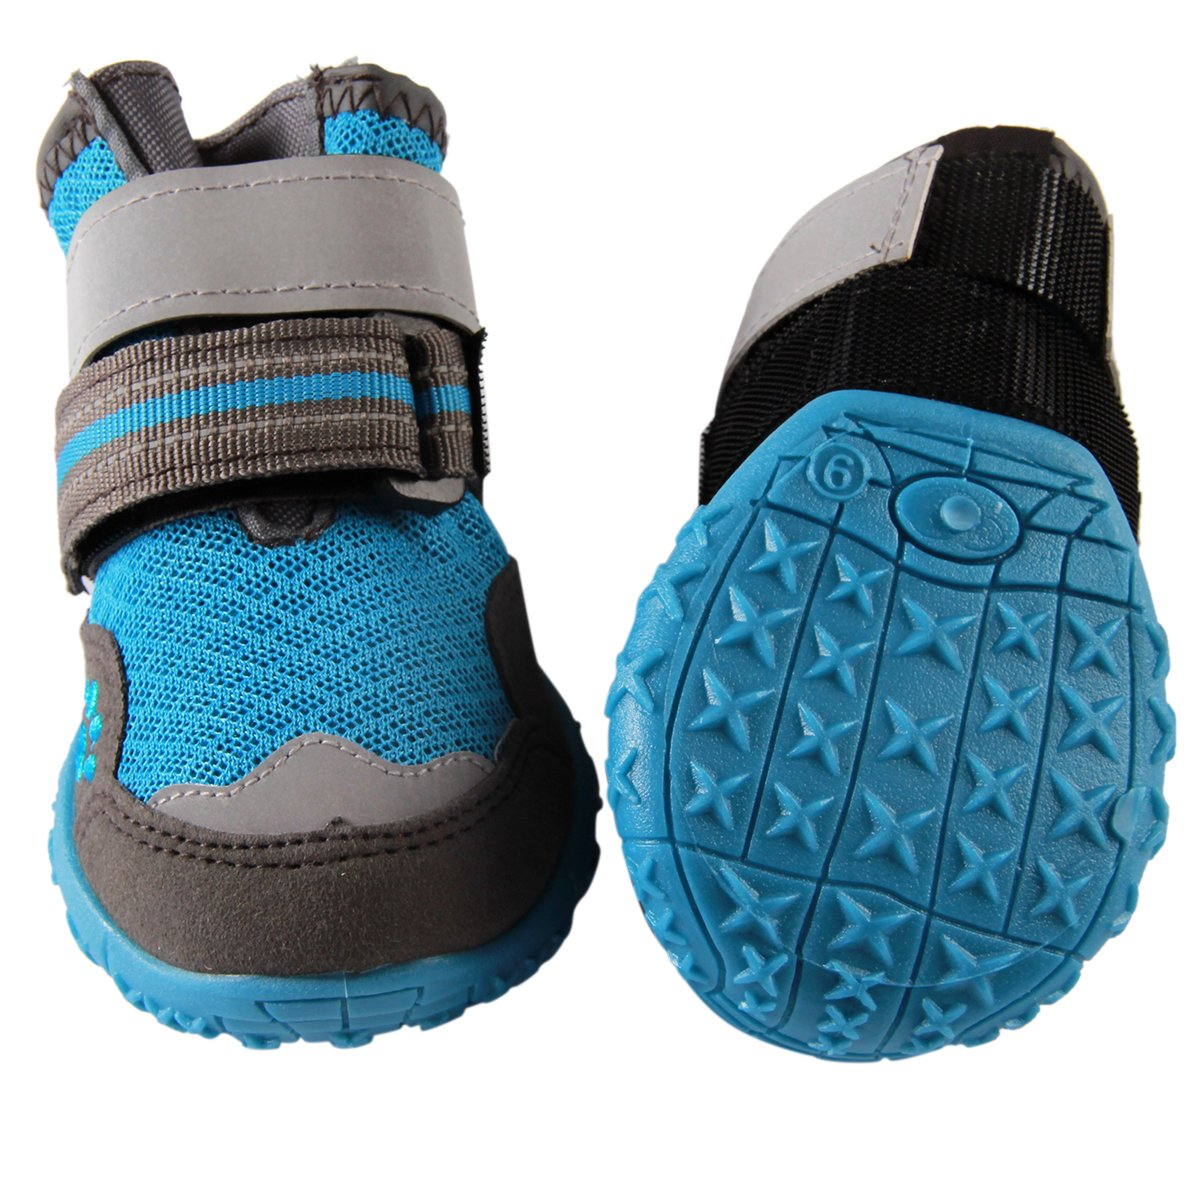 vecomfy Breathable Mesh Dog Shoes for Small Dogs(4 Boots),Summer Hot Pavement Protect Paws Dog Boots,Waterproof Non-Slip (Blue,Size 4) by vecomfy